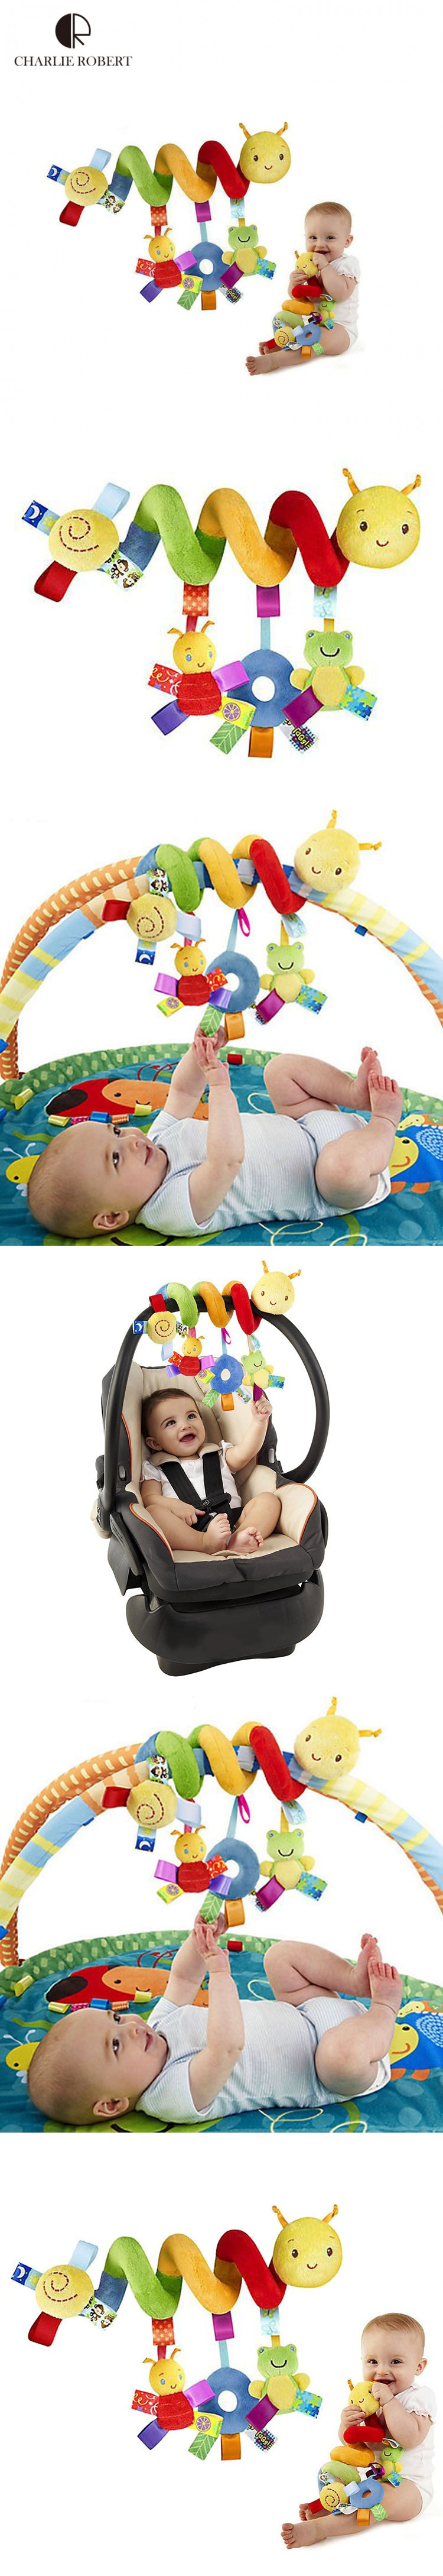 Hot plush baby toy educational newborn mobile baby rattles toys for kids colorful caterpillar baby stroller toys